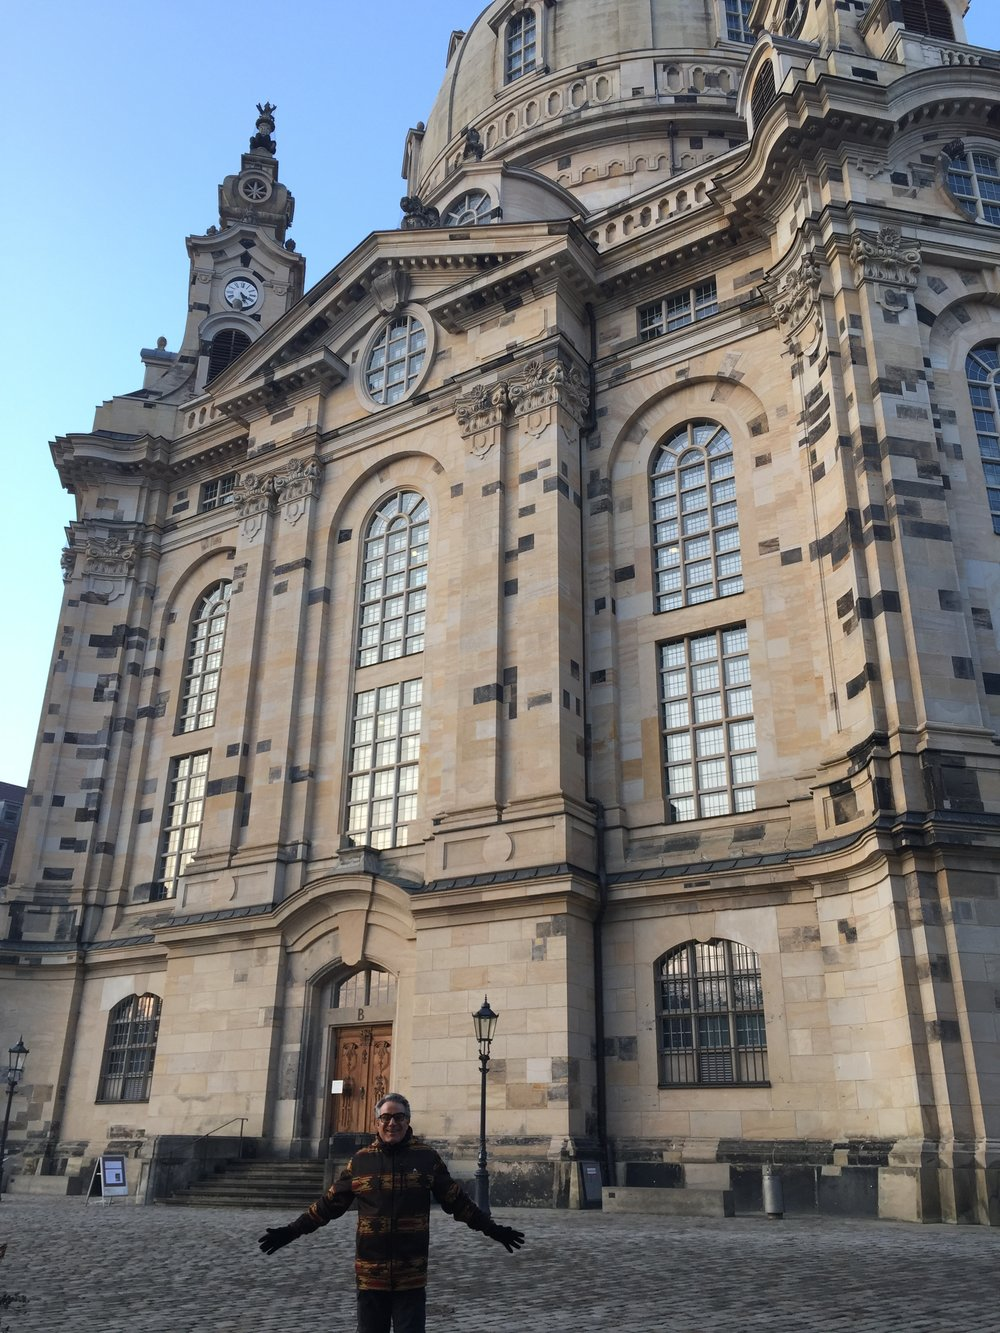 Frank outside the Frauenkirche.